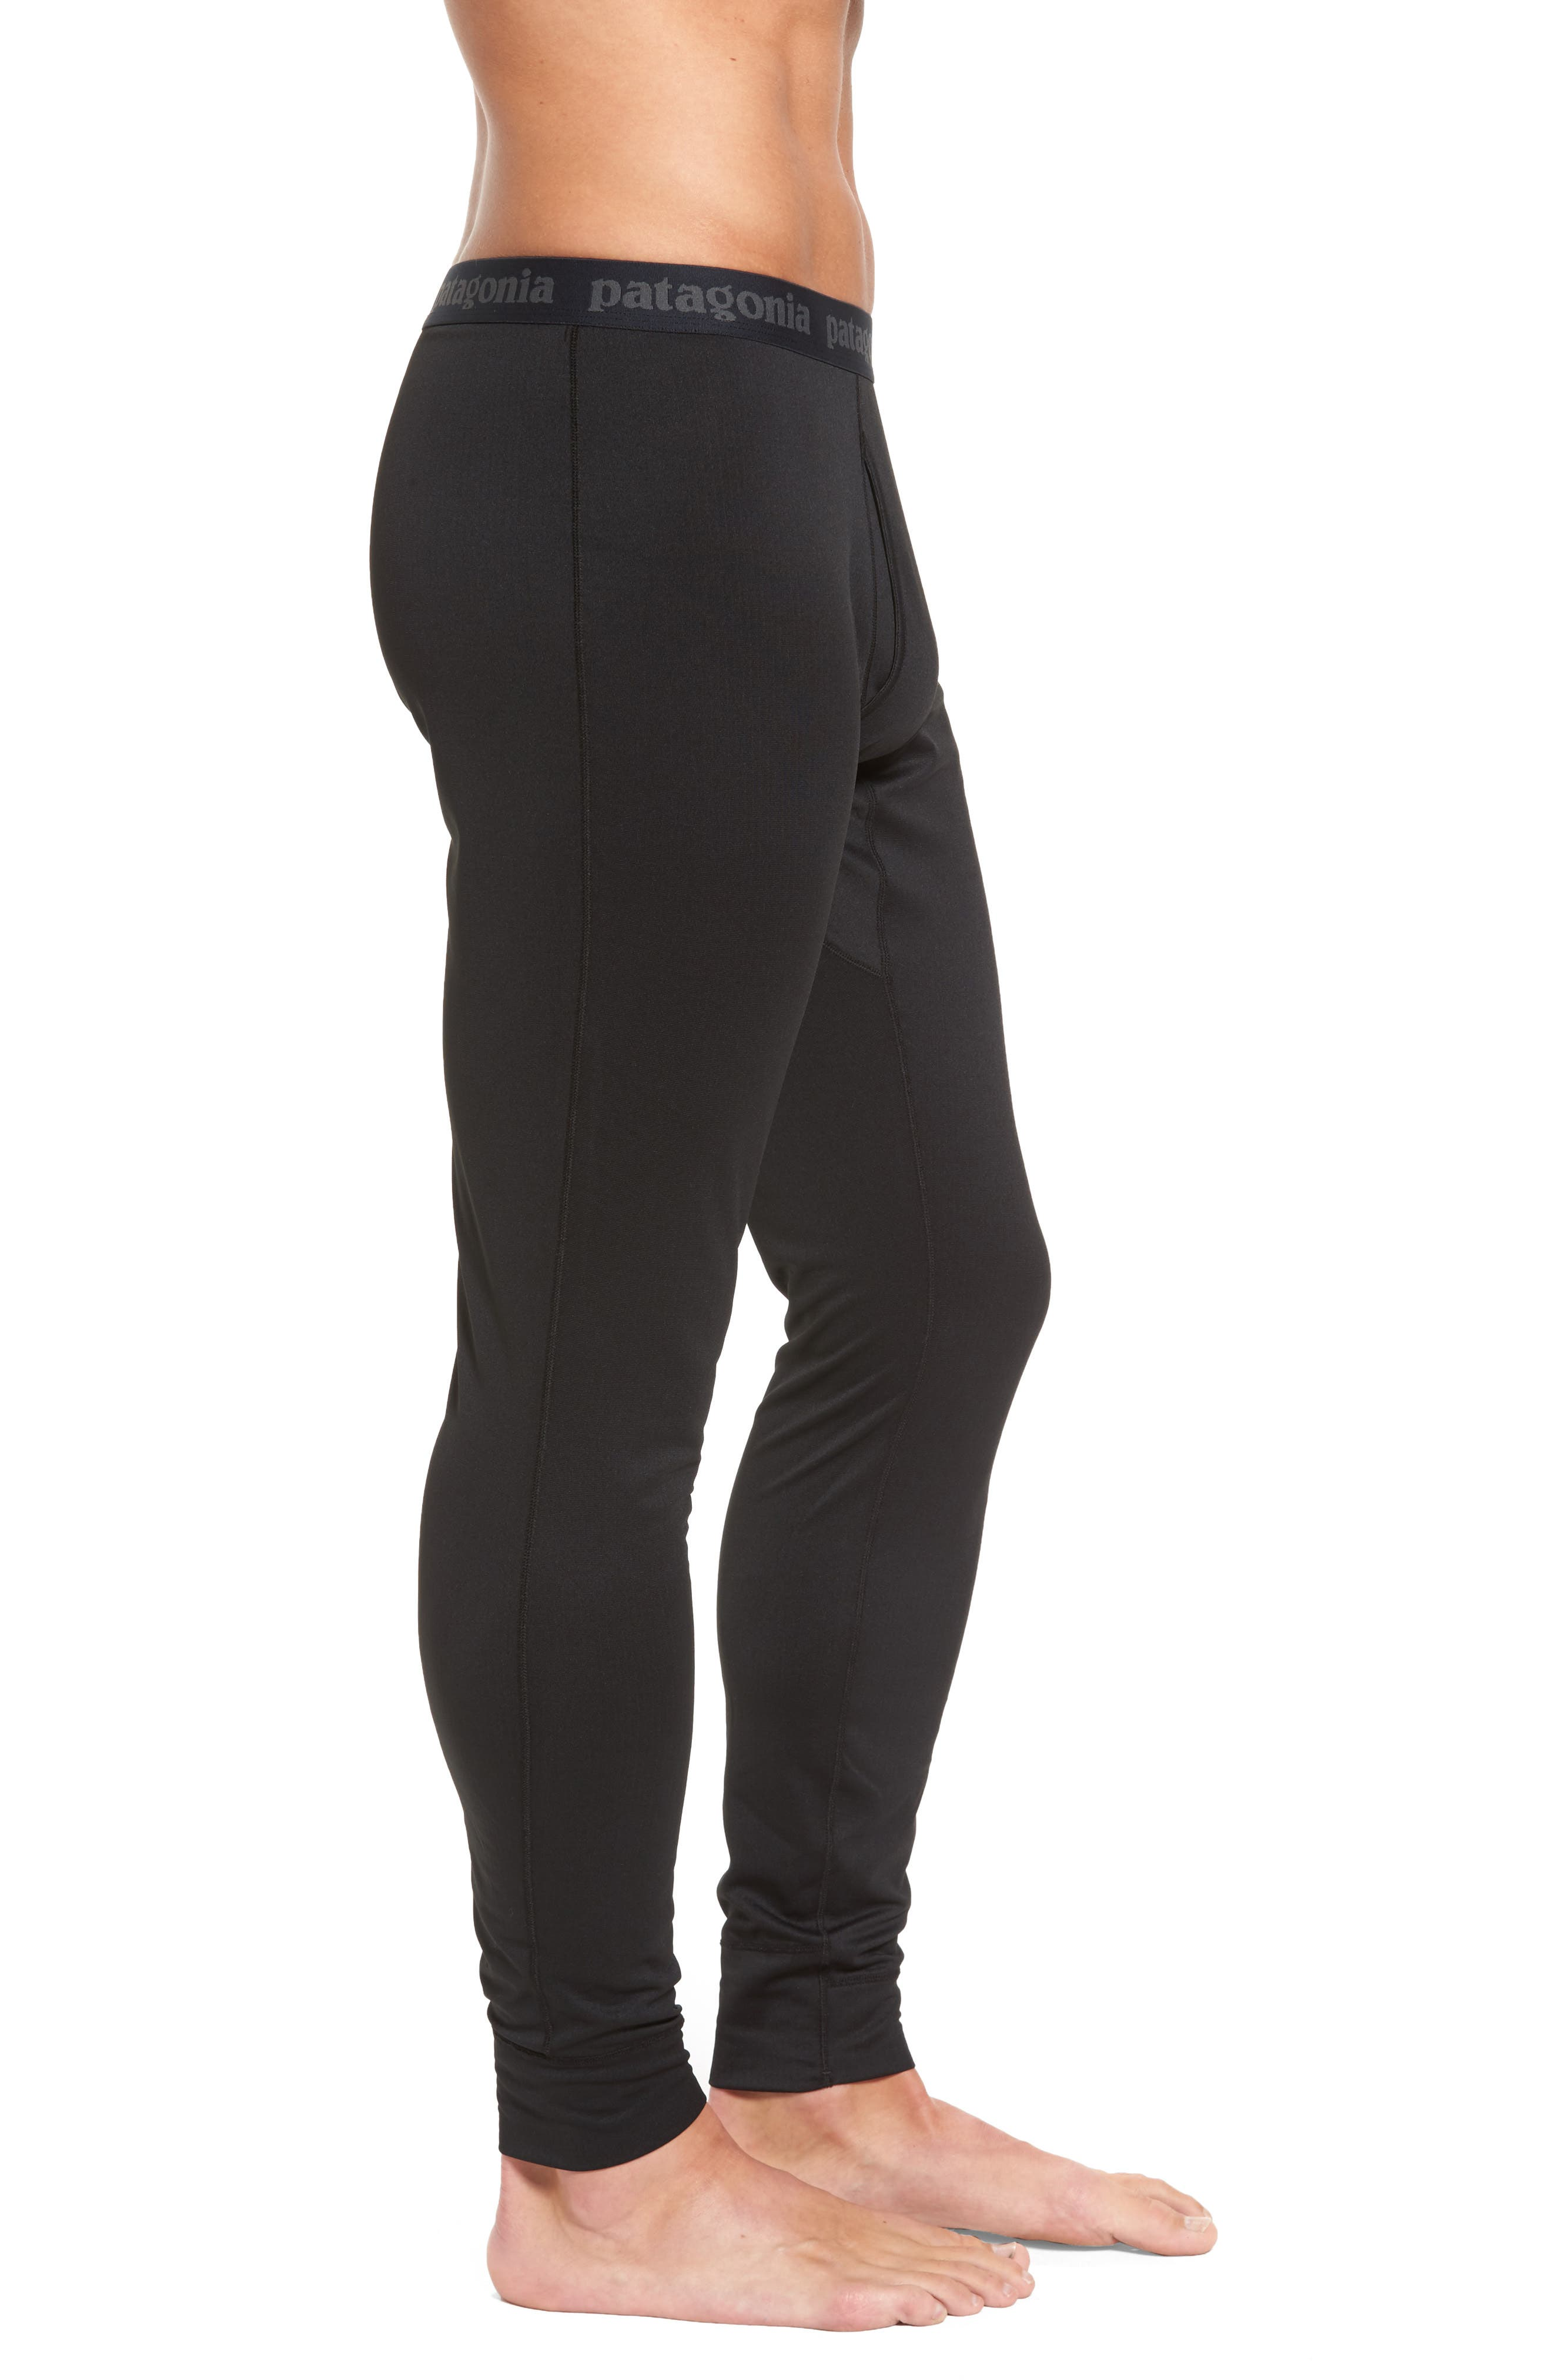 Capilene Midweight Base Layer Tights,                             Alternate thumbnail 5, color,